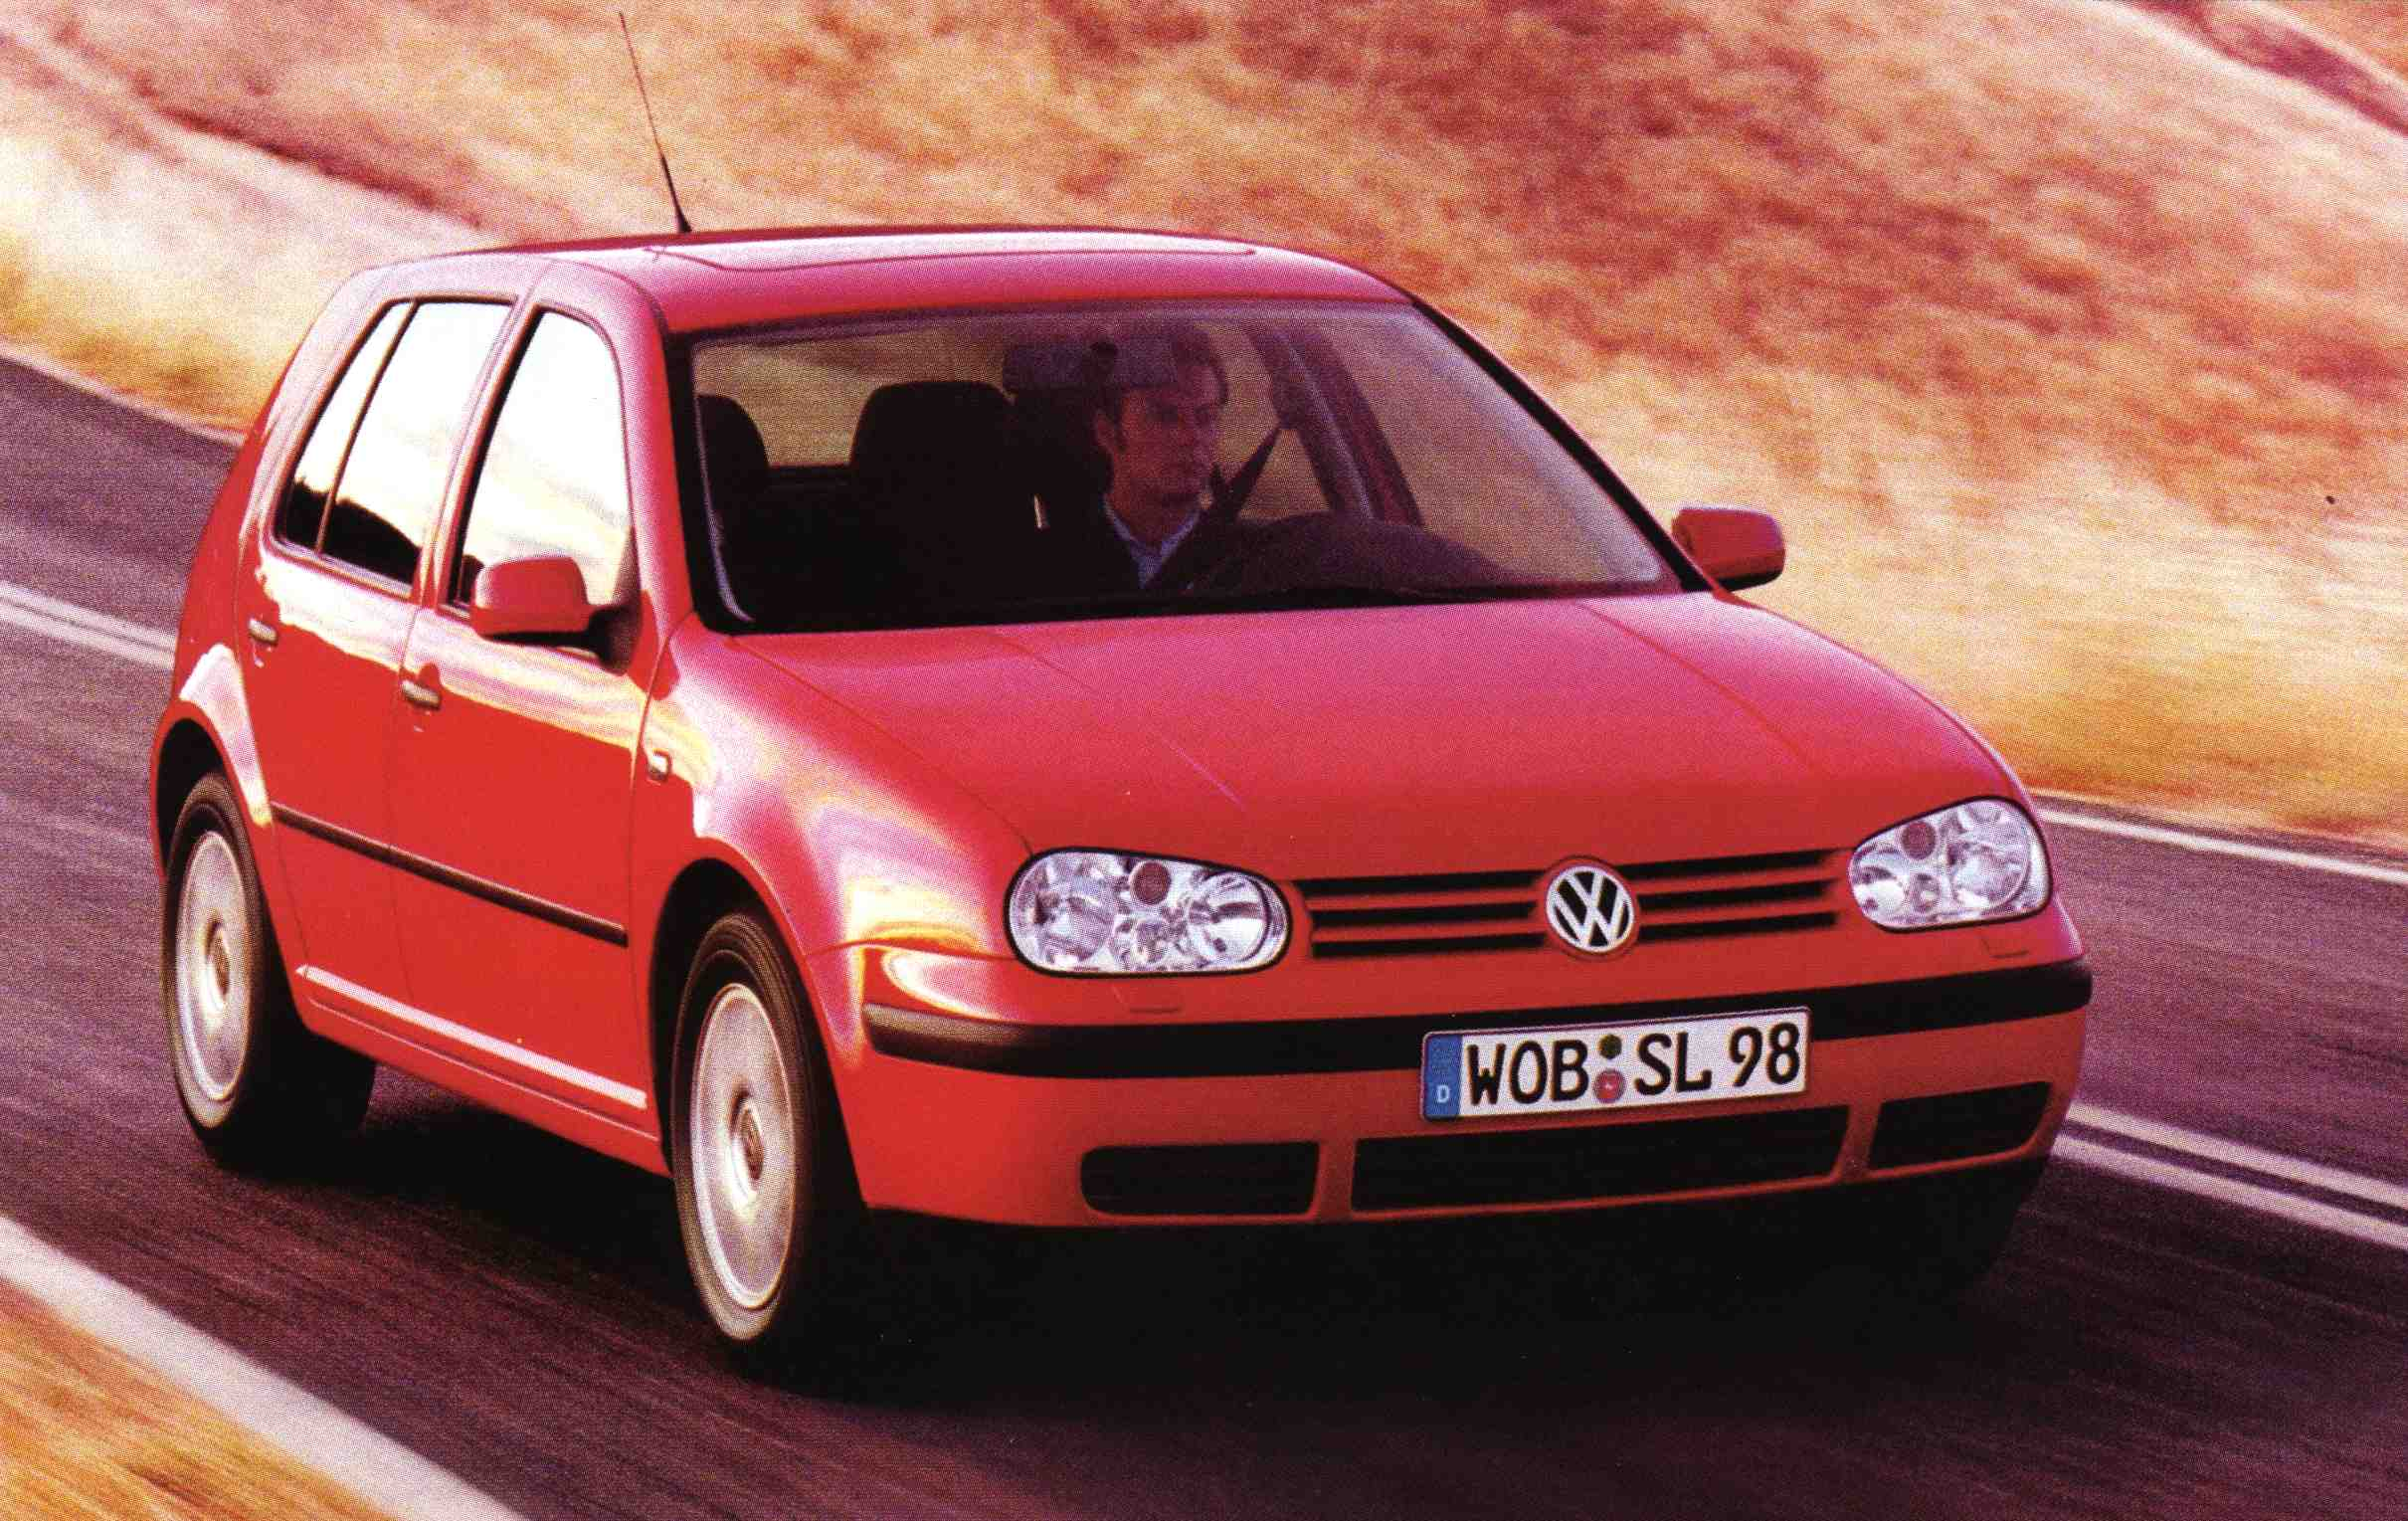 Europe 2000 Vw Golf And Fiat Punto In The Lead Best Selling Cars Blog